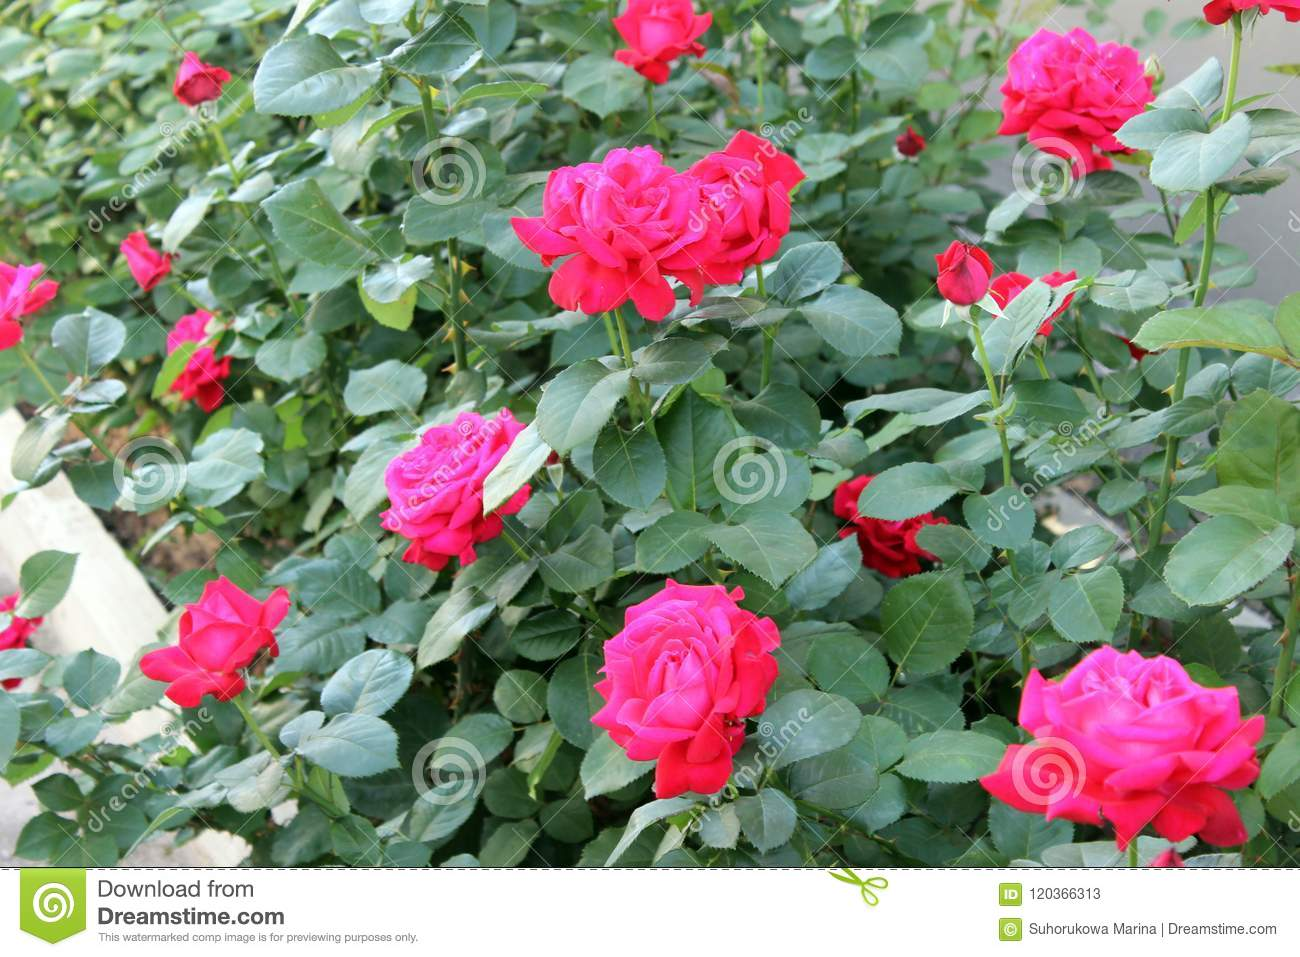 Beautiful rose flower backgrounds stock image image of friendship beautiful backgrounds of flowers roses yellow pink alleys of roses izmirmasajfo